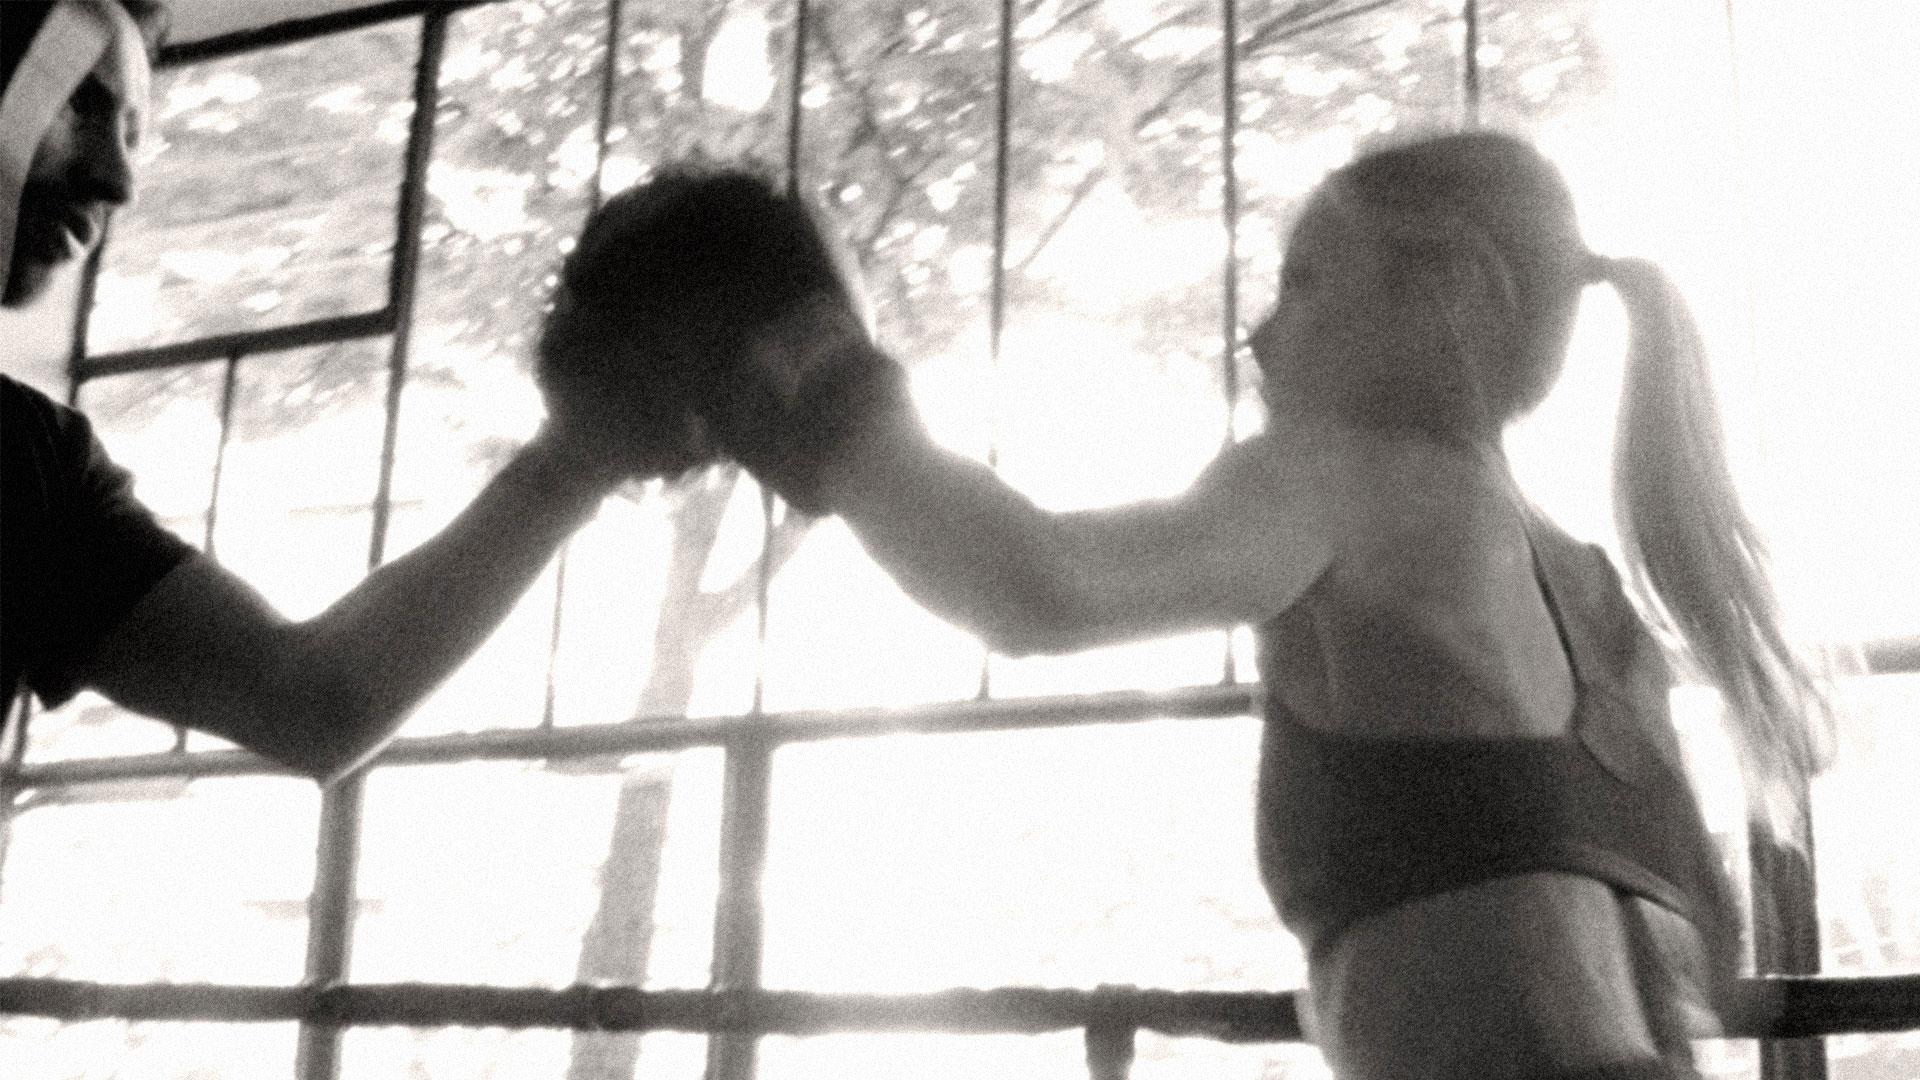 Black and white image of woman boxing